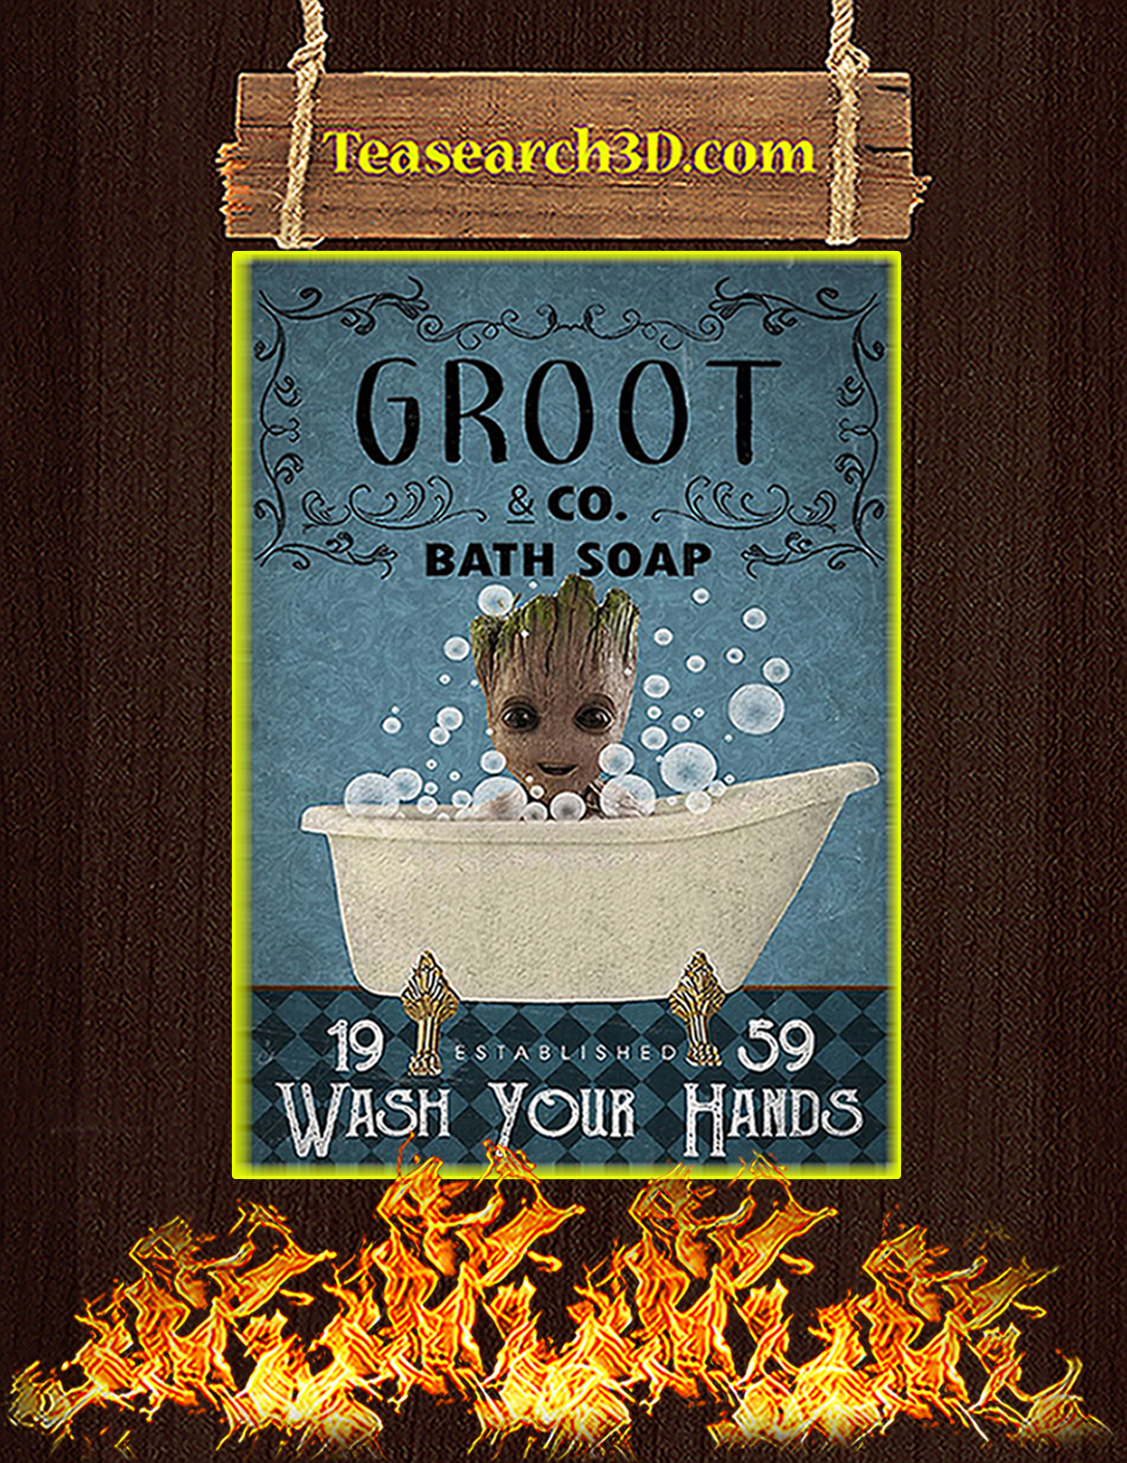 Bath Soap Company Groot Wash Your Hands Poster A3